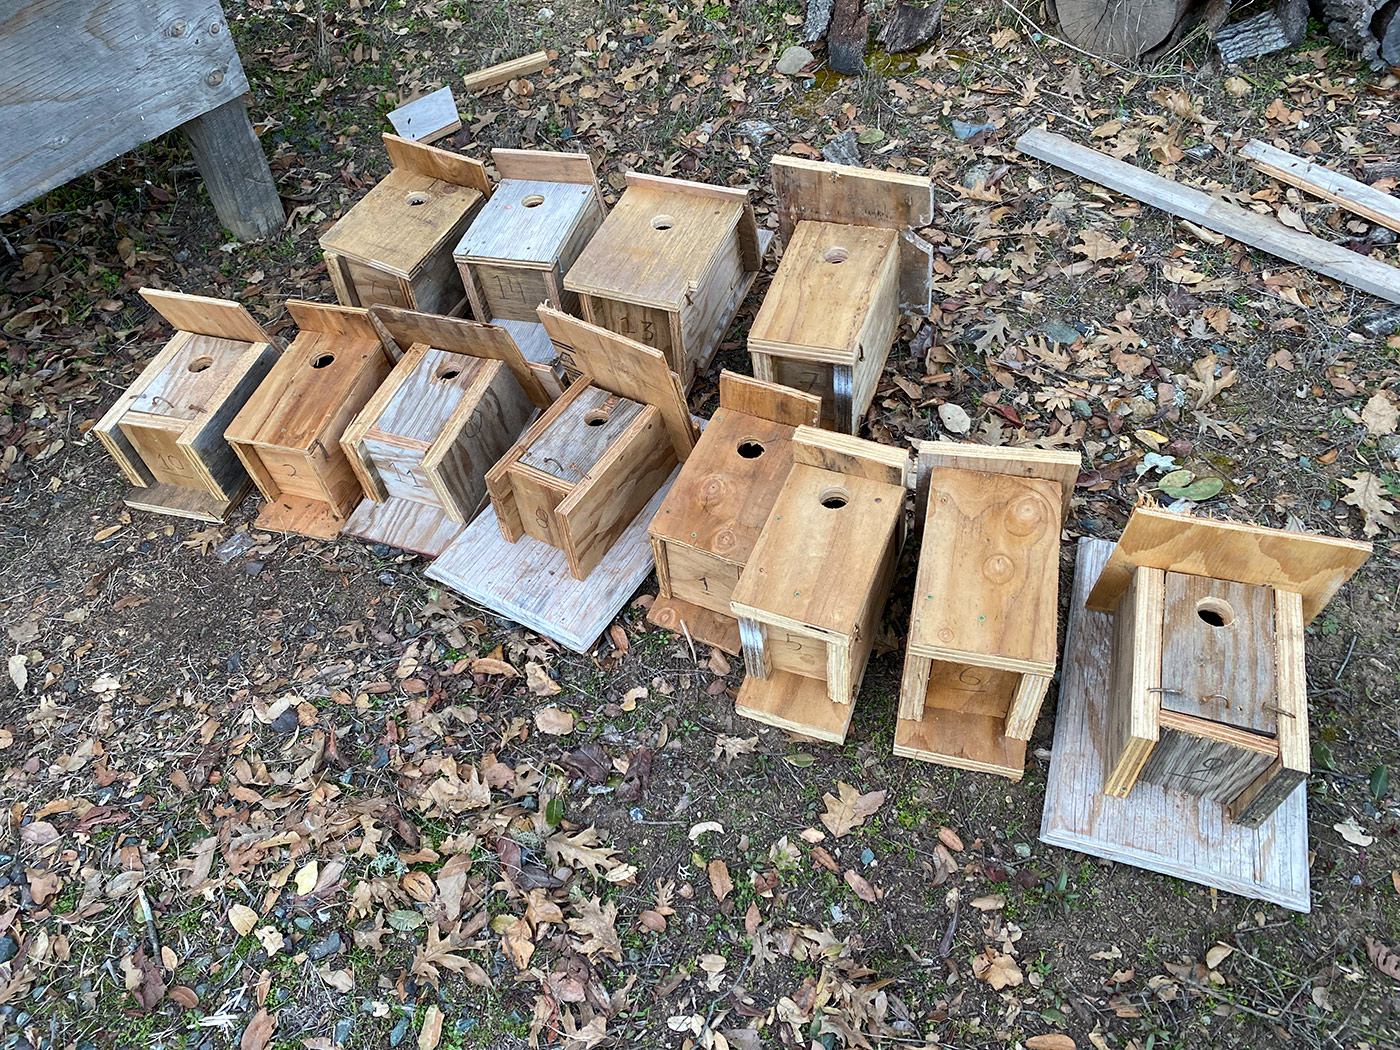 Freshly made birdhouses ready to set up